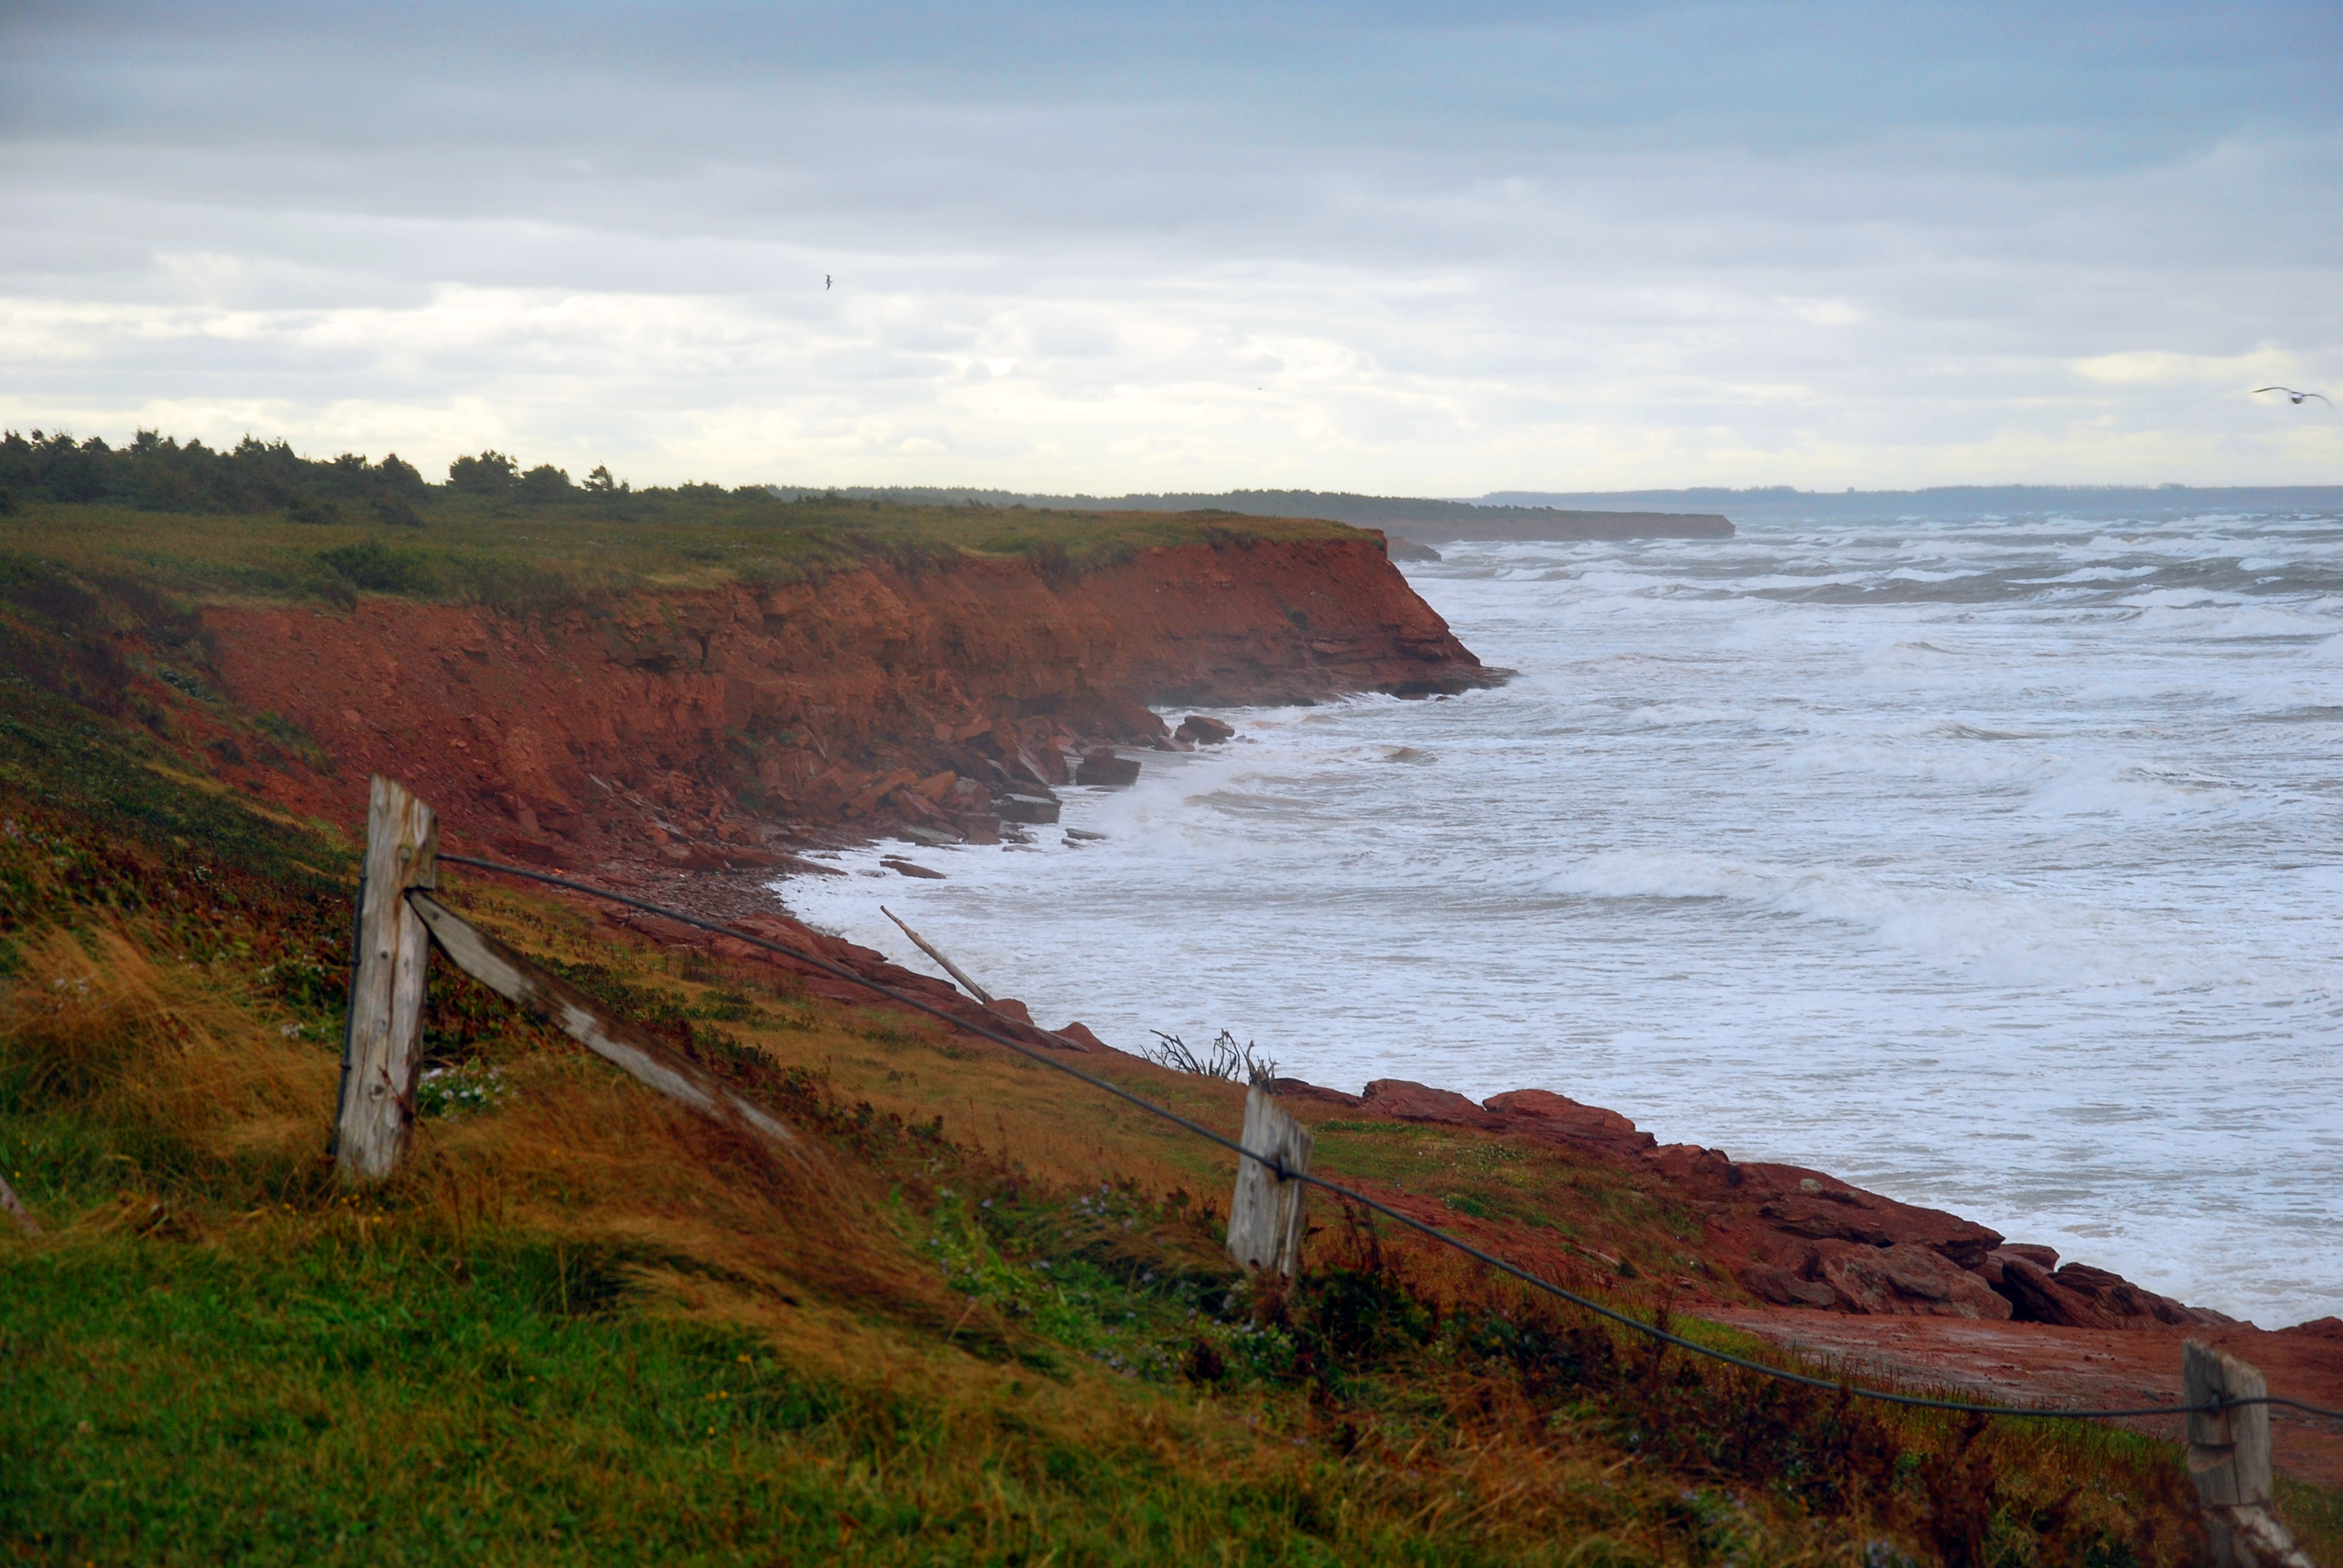 Prince Edward Islands File:Prince edw...